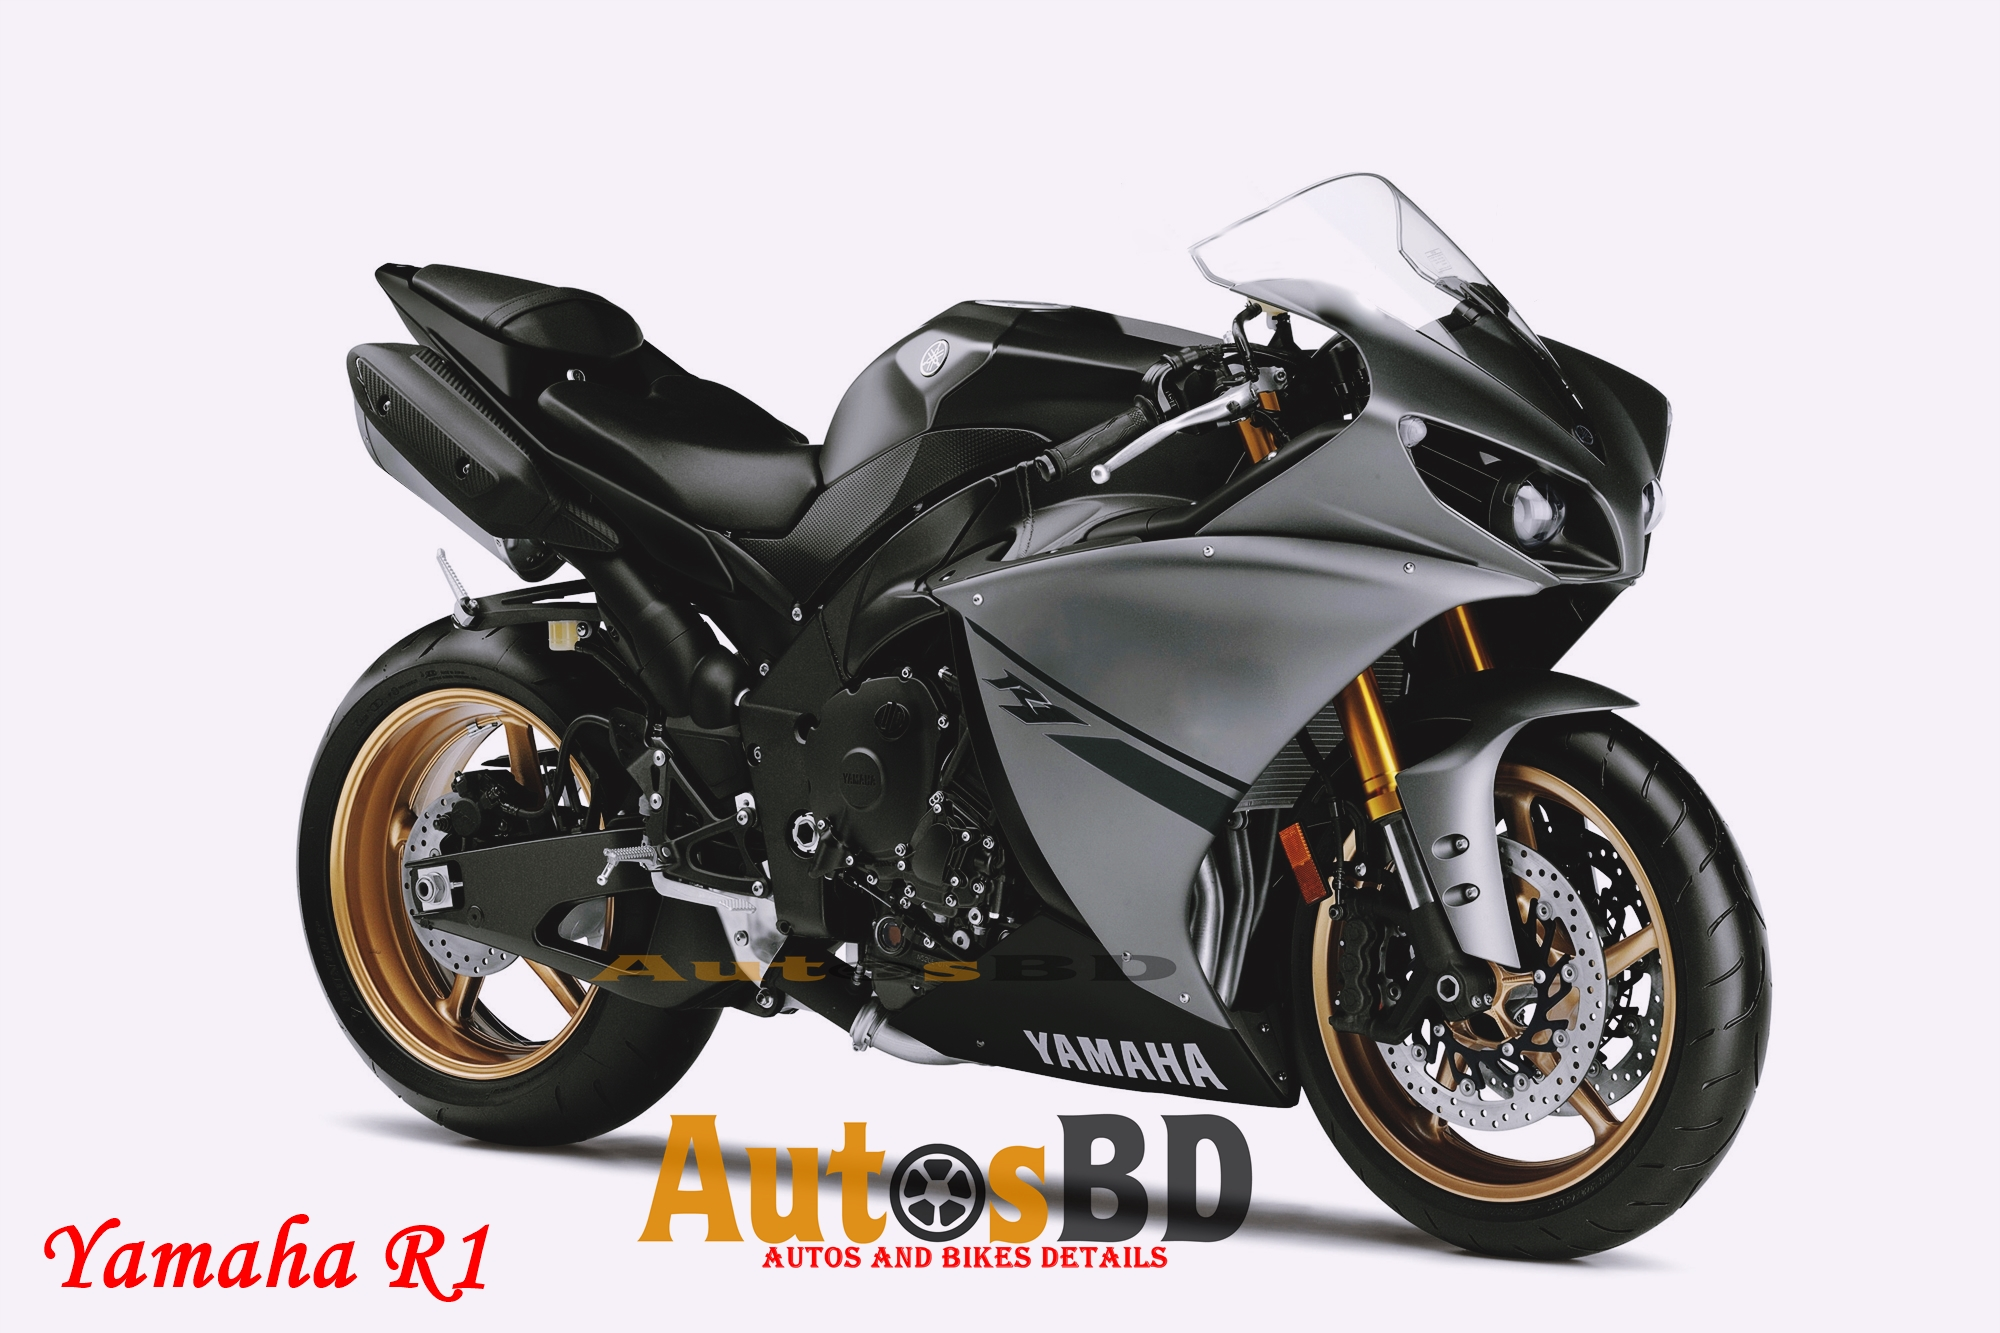 Yamaha r1 motorcycle specification top speed mileage price for Yamaha r1 top speed